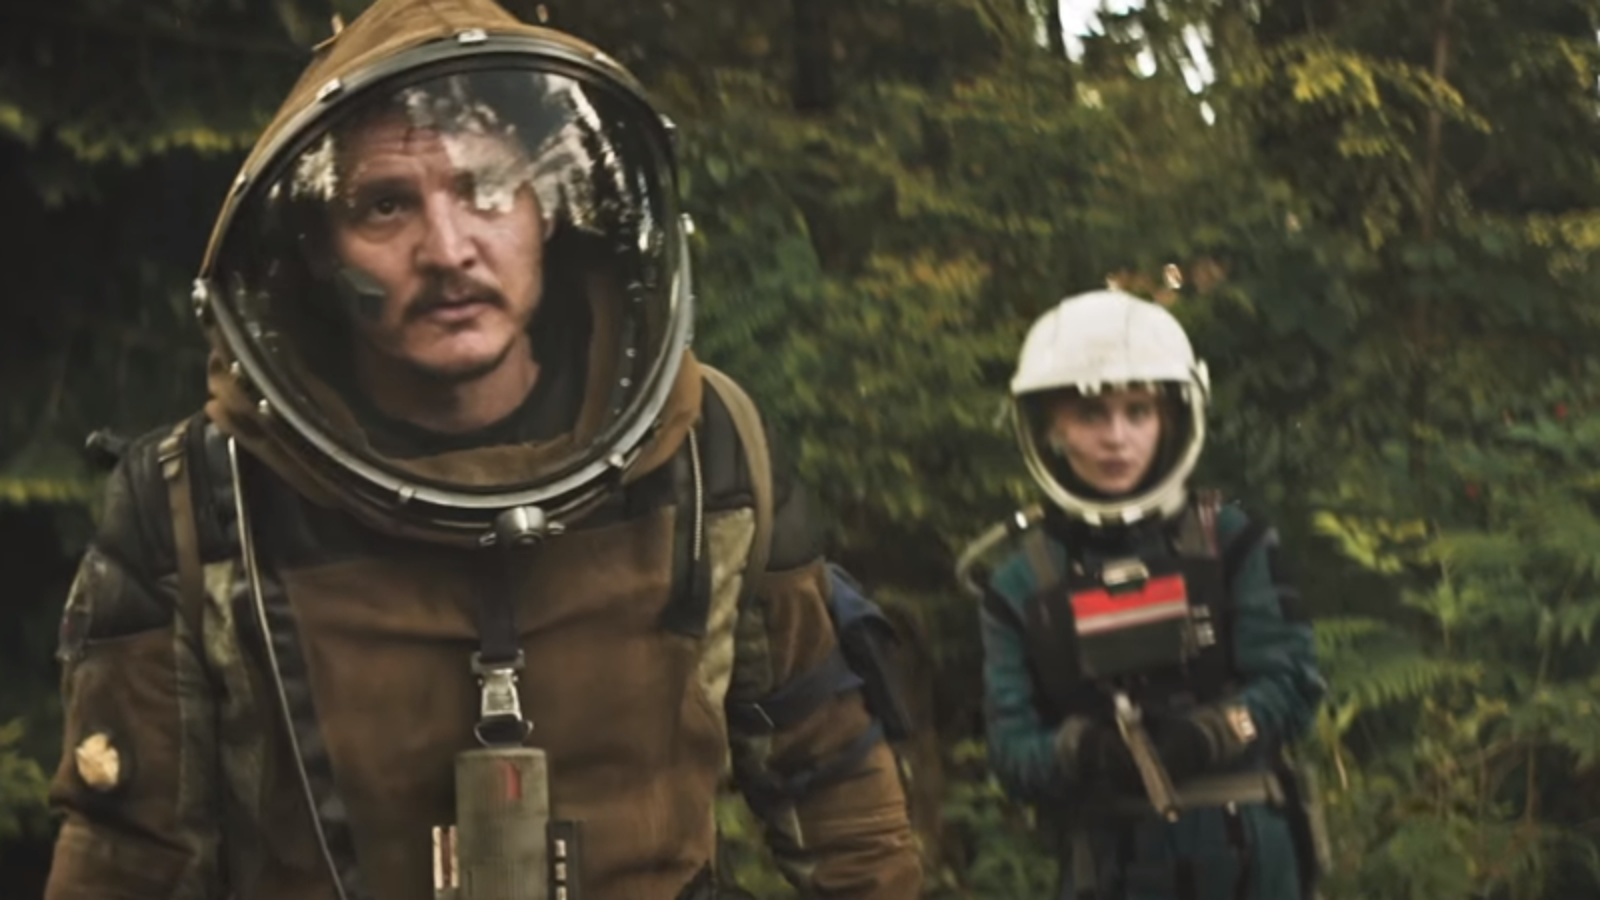 The Sci-Fi Gold Rush Gets Dark and Dirty in the Latest Prospect Trailer